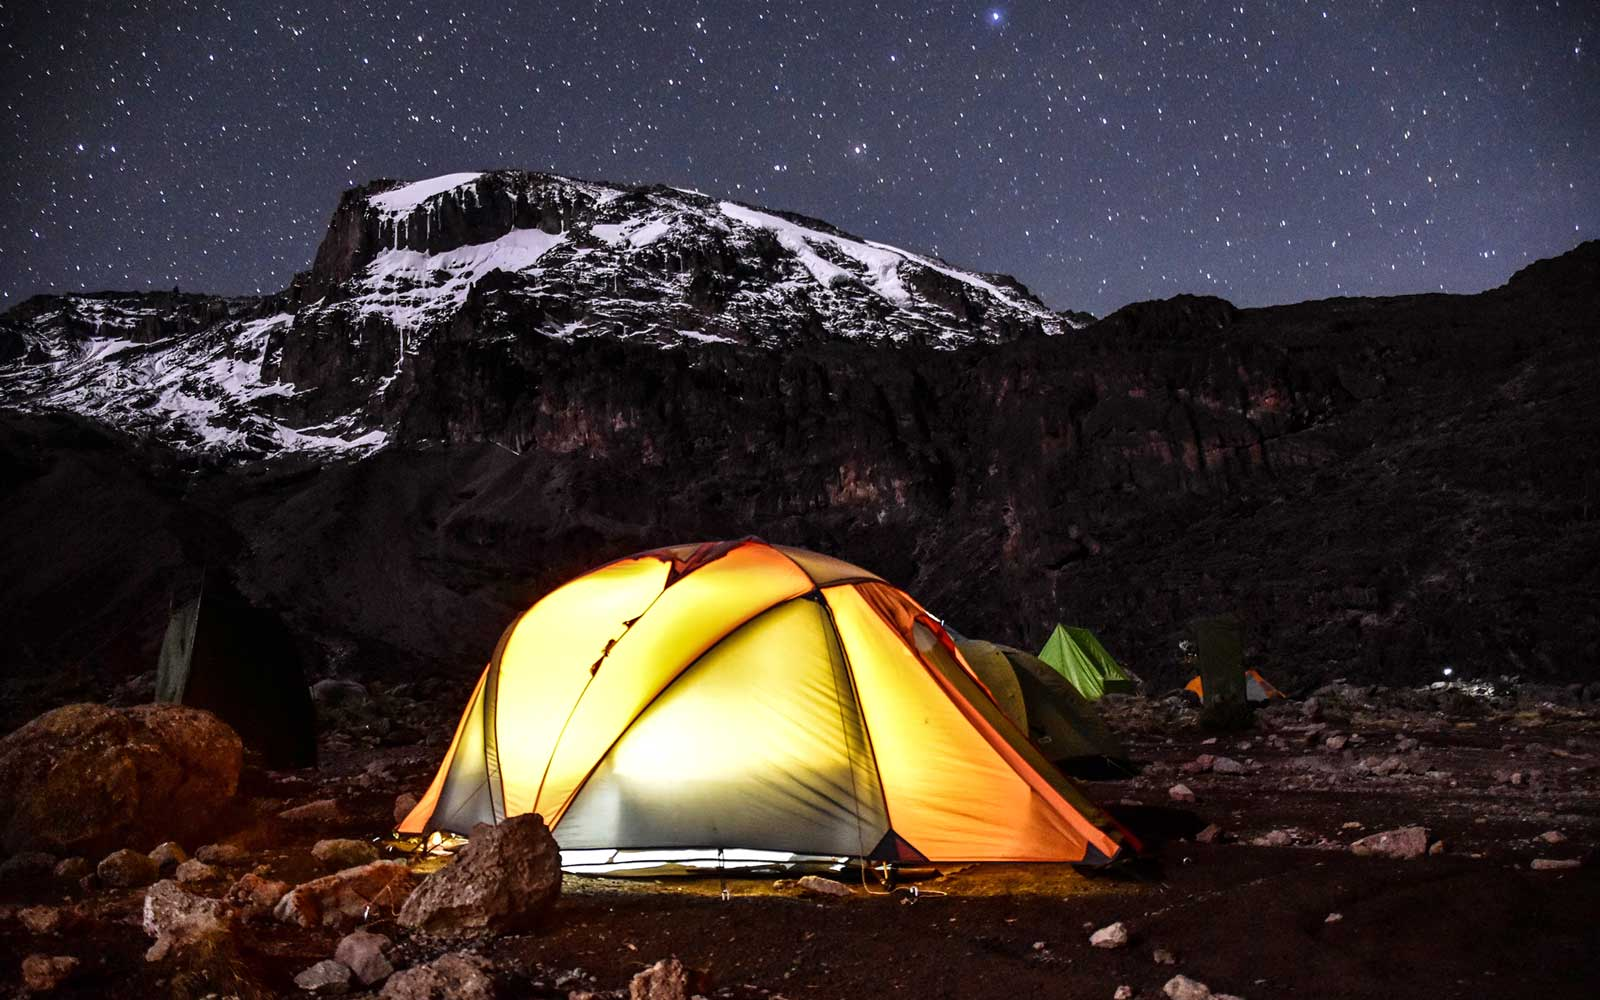 Hike and camp on Mount Kilimanjaro